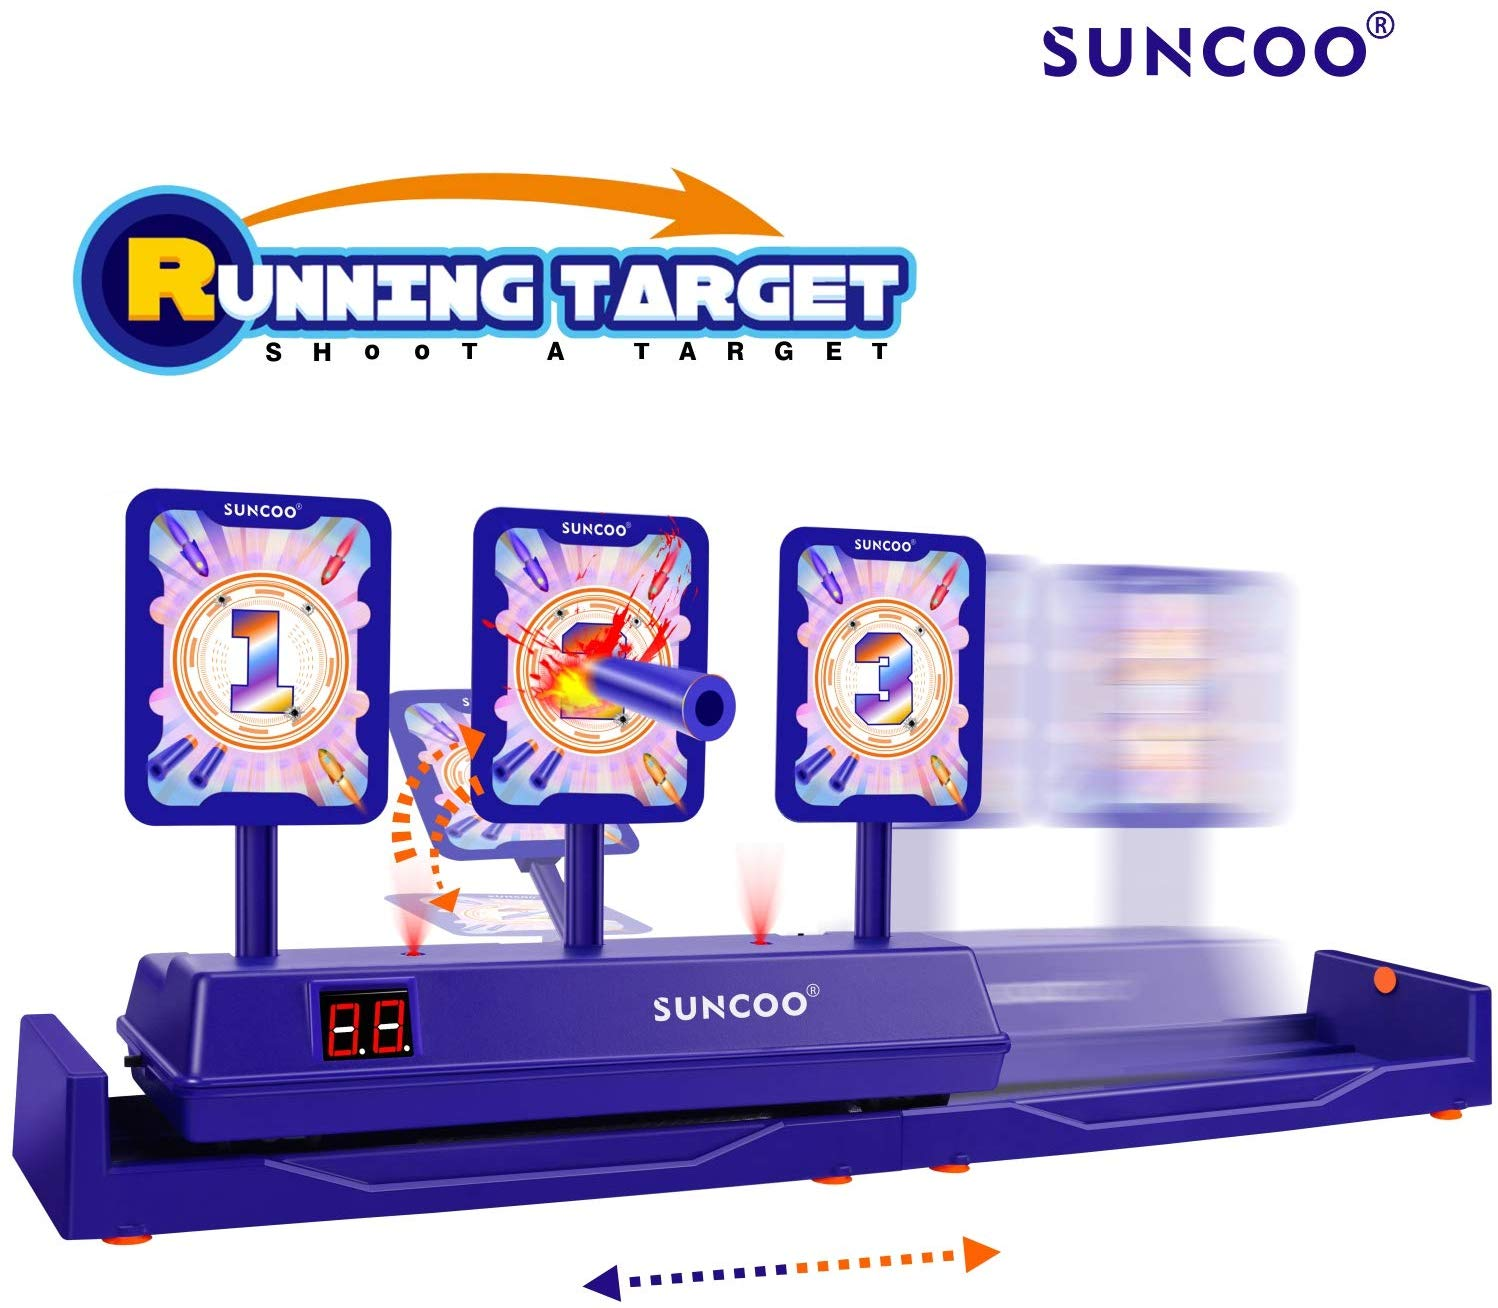 SUNCOO Running Targets Shooting Electronic Scoring Auto Reset Digital  Targets for Nerf Guns Toys,Ideal Gift Toy(2019 New Version).